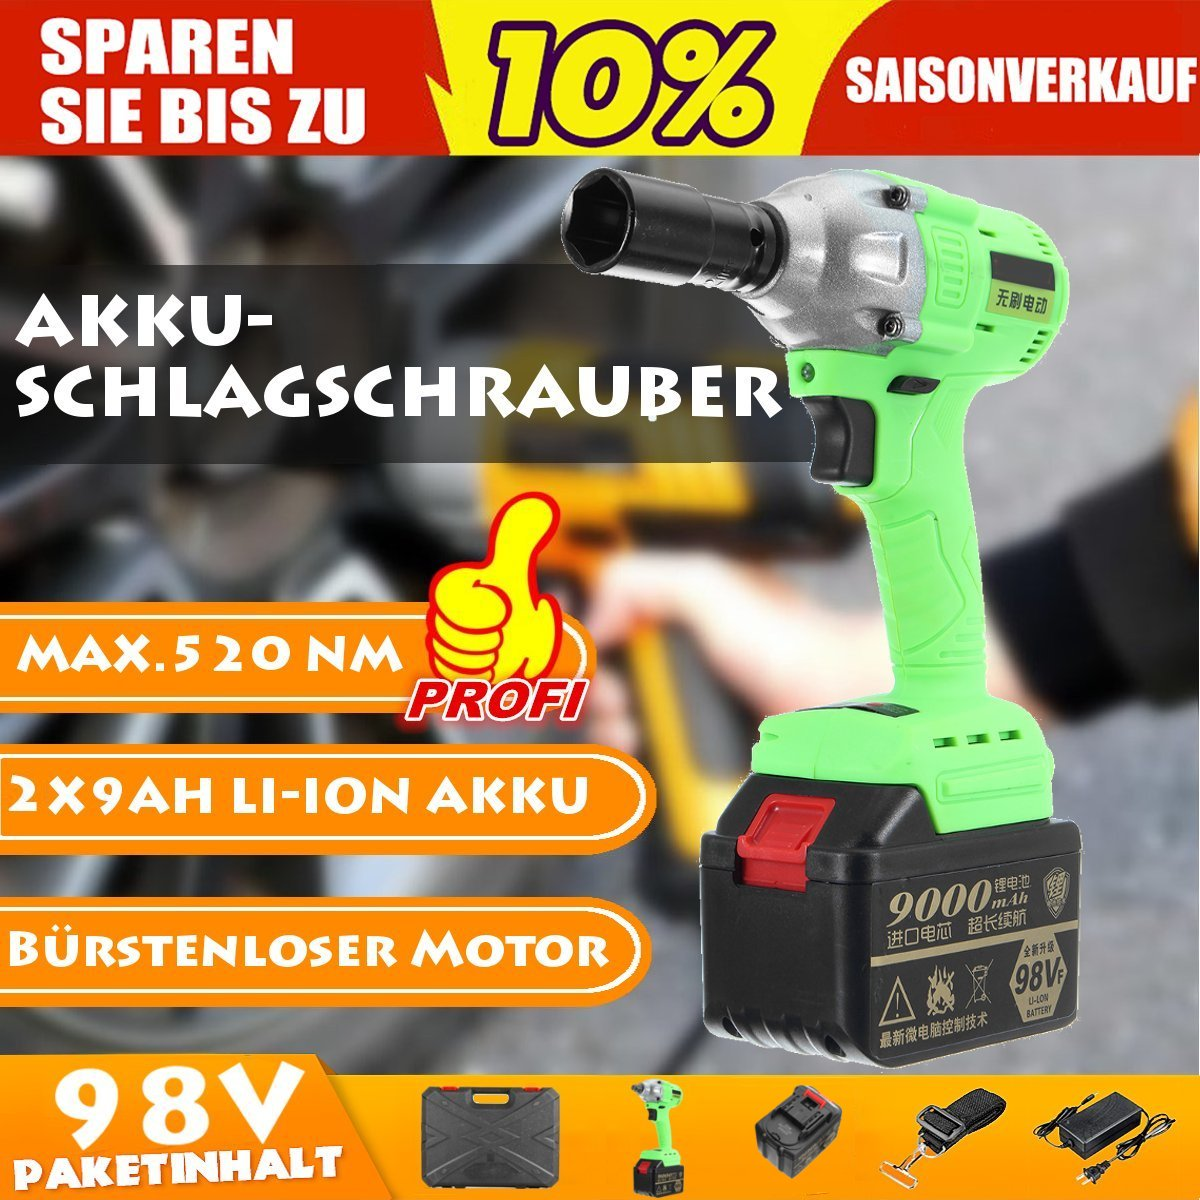 Cordless Electric Wrench 520Nm High Torque 98V Li-ion Impact Wrench Brushless with 2 Battery 220V Power ToolCordless Electric Wrench 520Nm High Torque 98V Li-ion Impact Wrench Brushless with 2 Battery 220V Power Tool